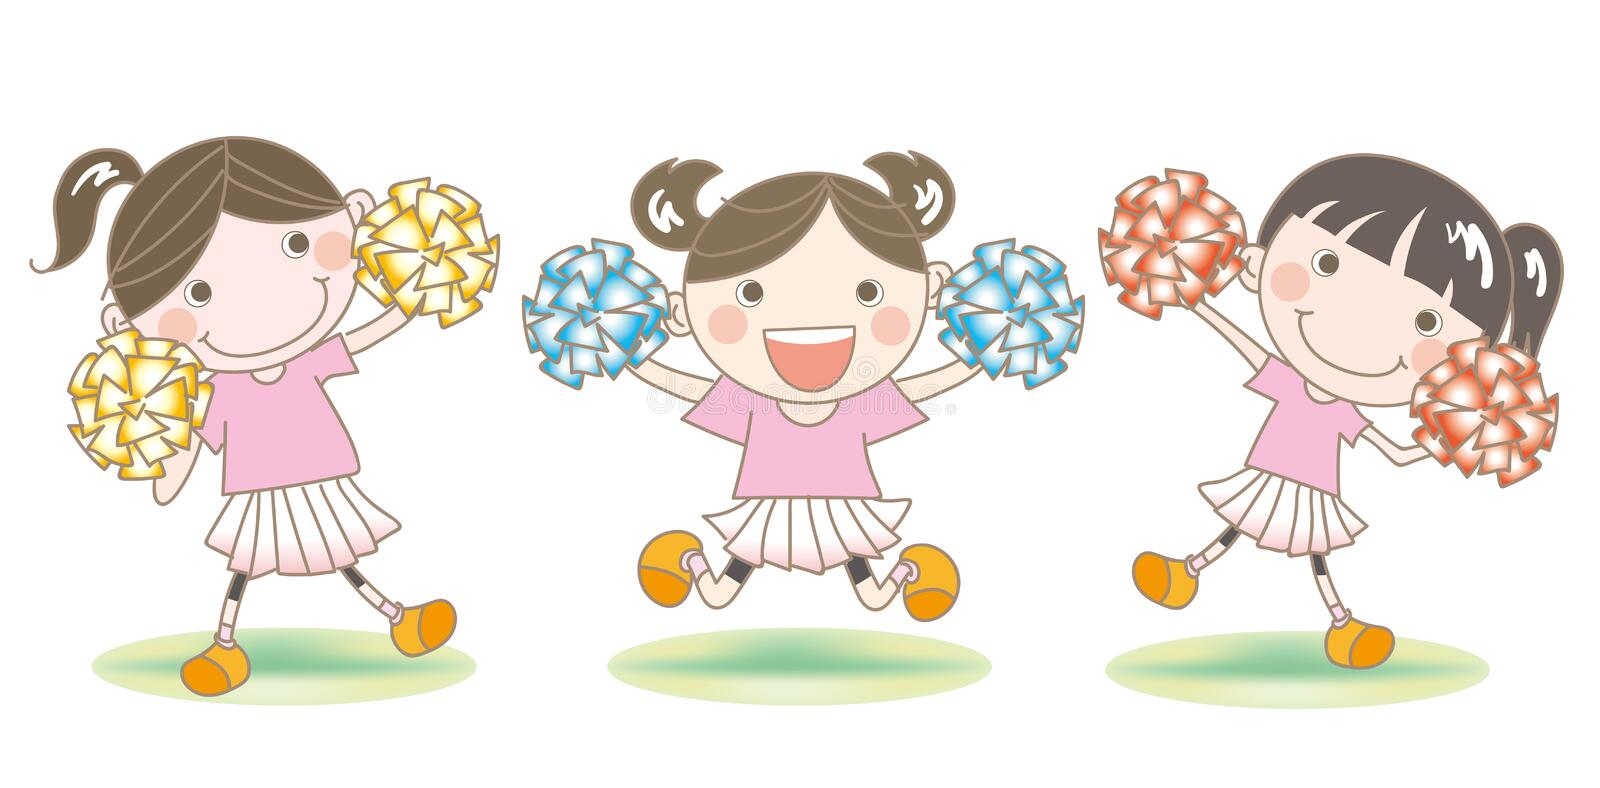 Cheerleader`s support image vector illustration